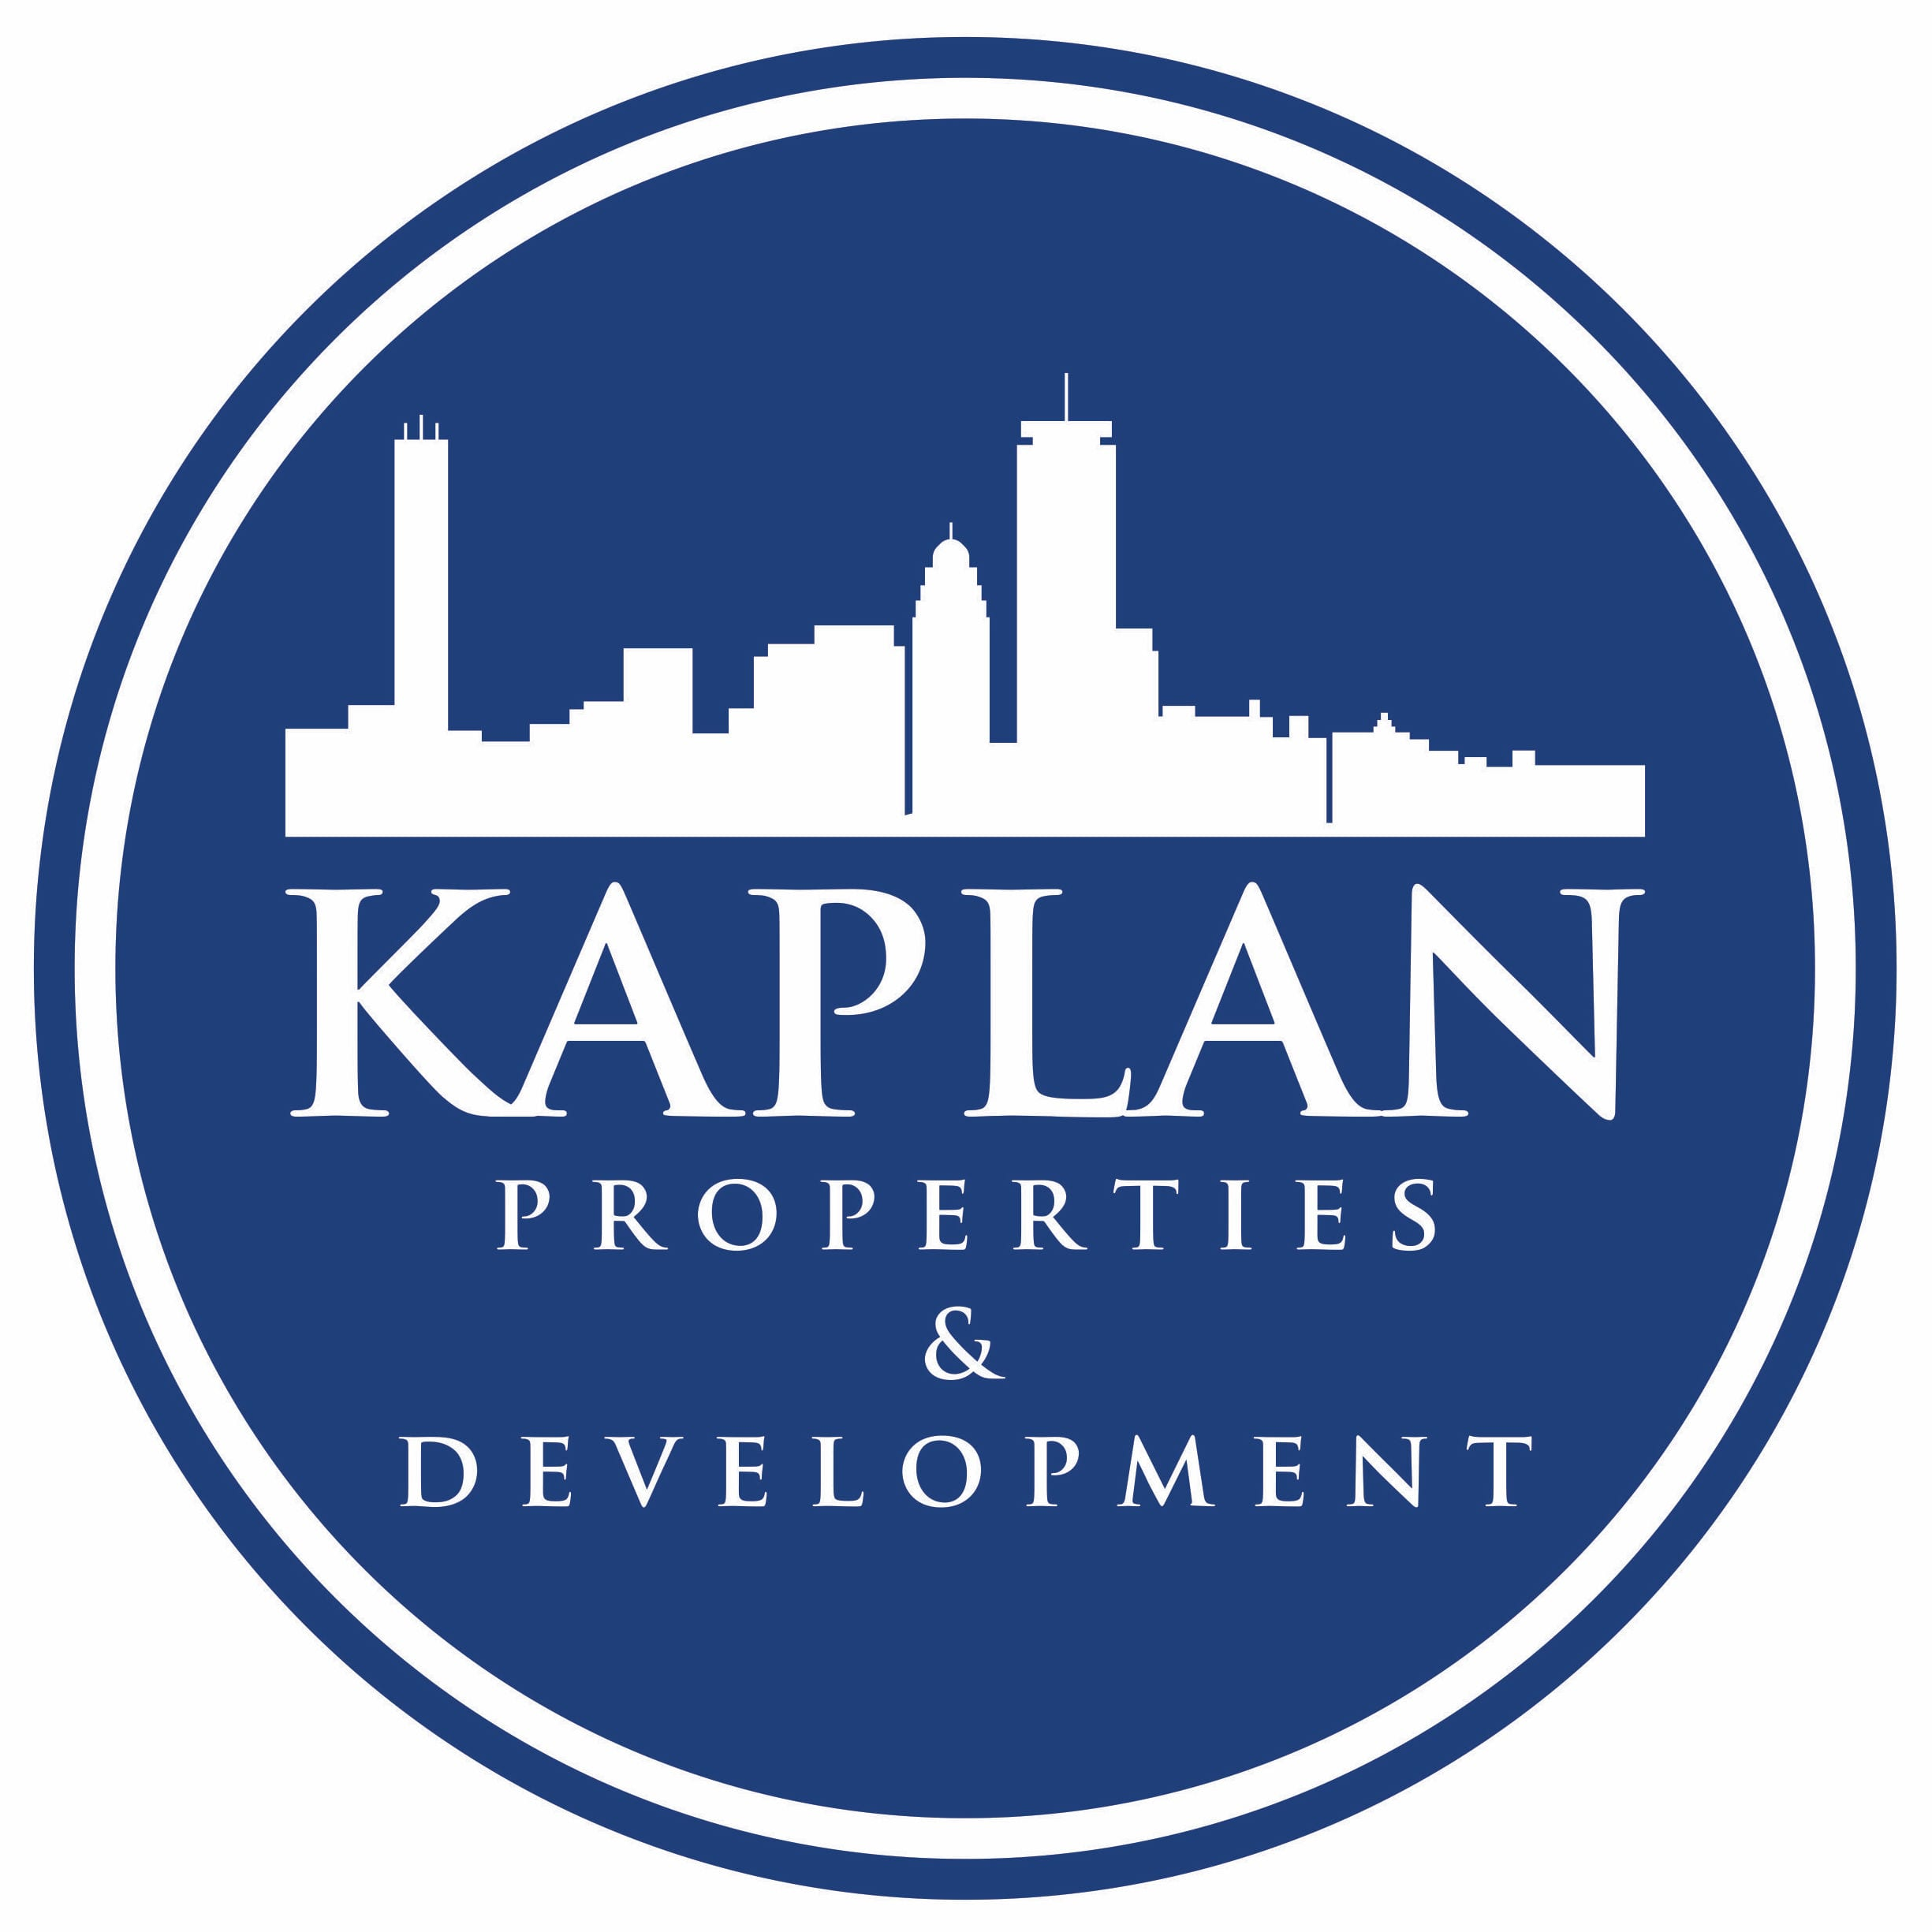 Kaplan Properties & Development